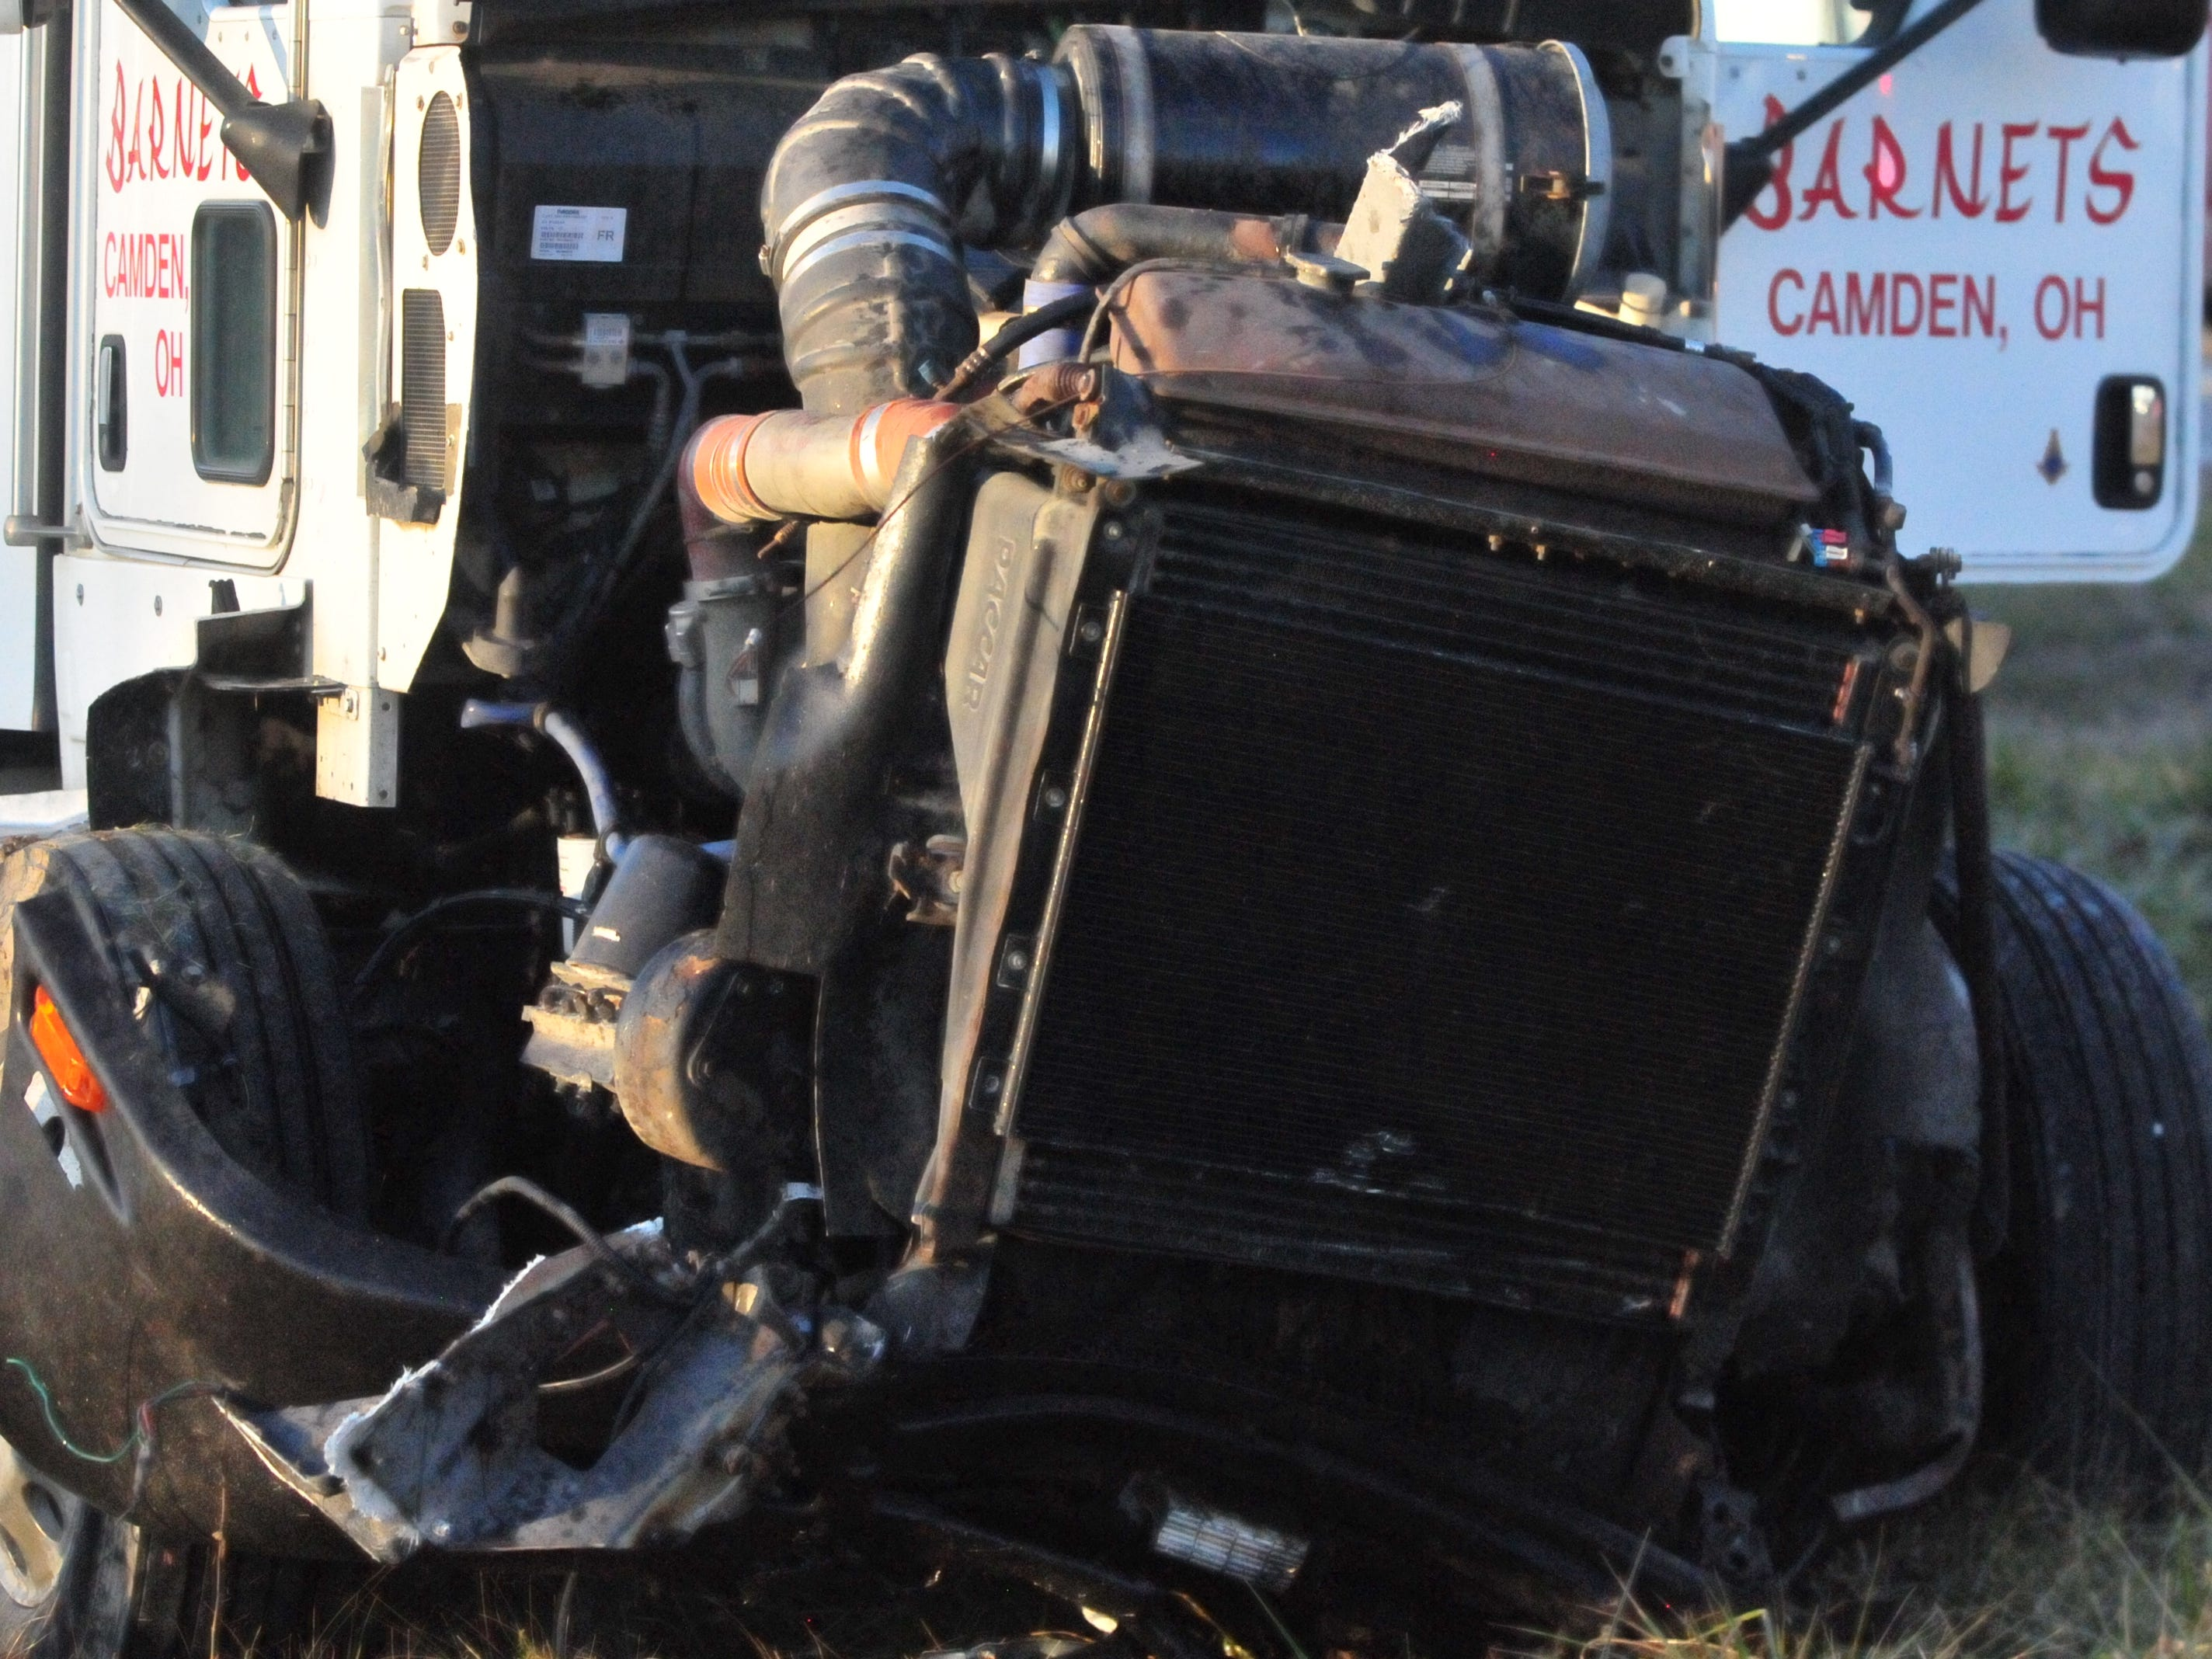 A damaged semi tractor-trailer came to rest in a grassy area adjacent to U.S. 35 after a Monday afternoon accident.